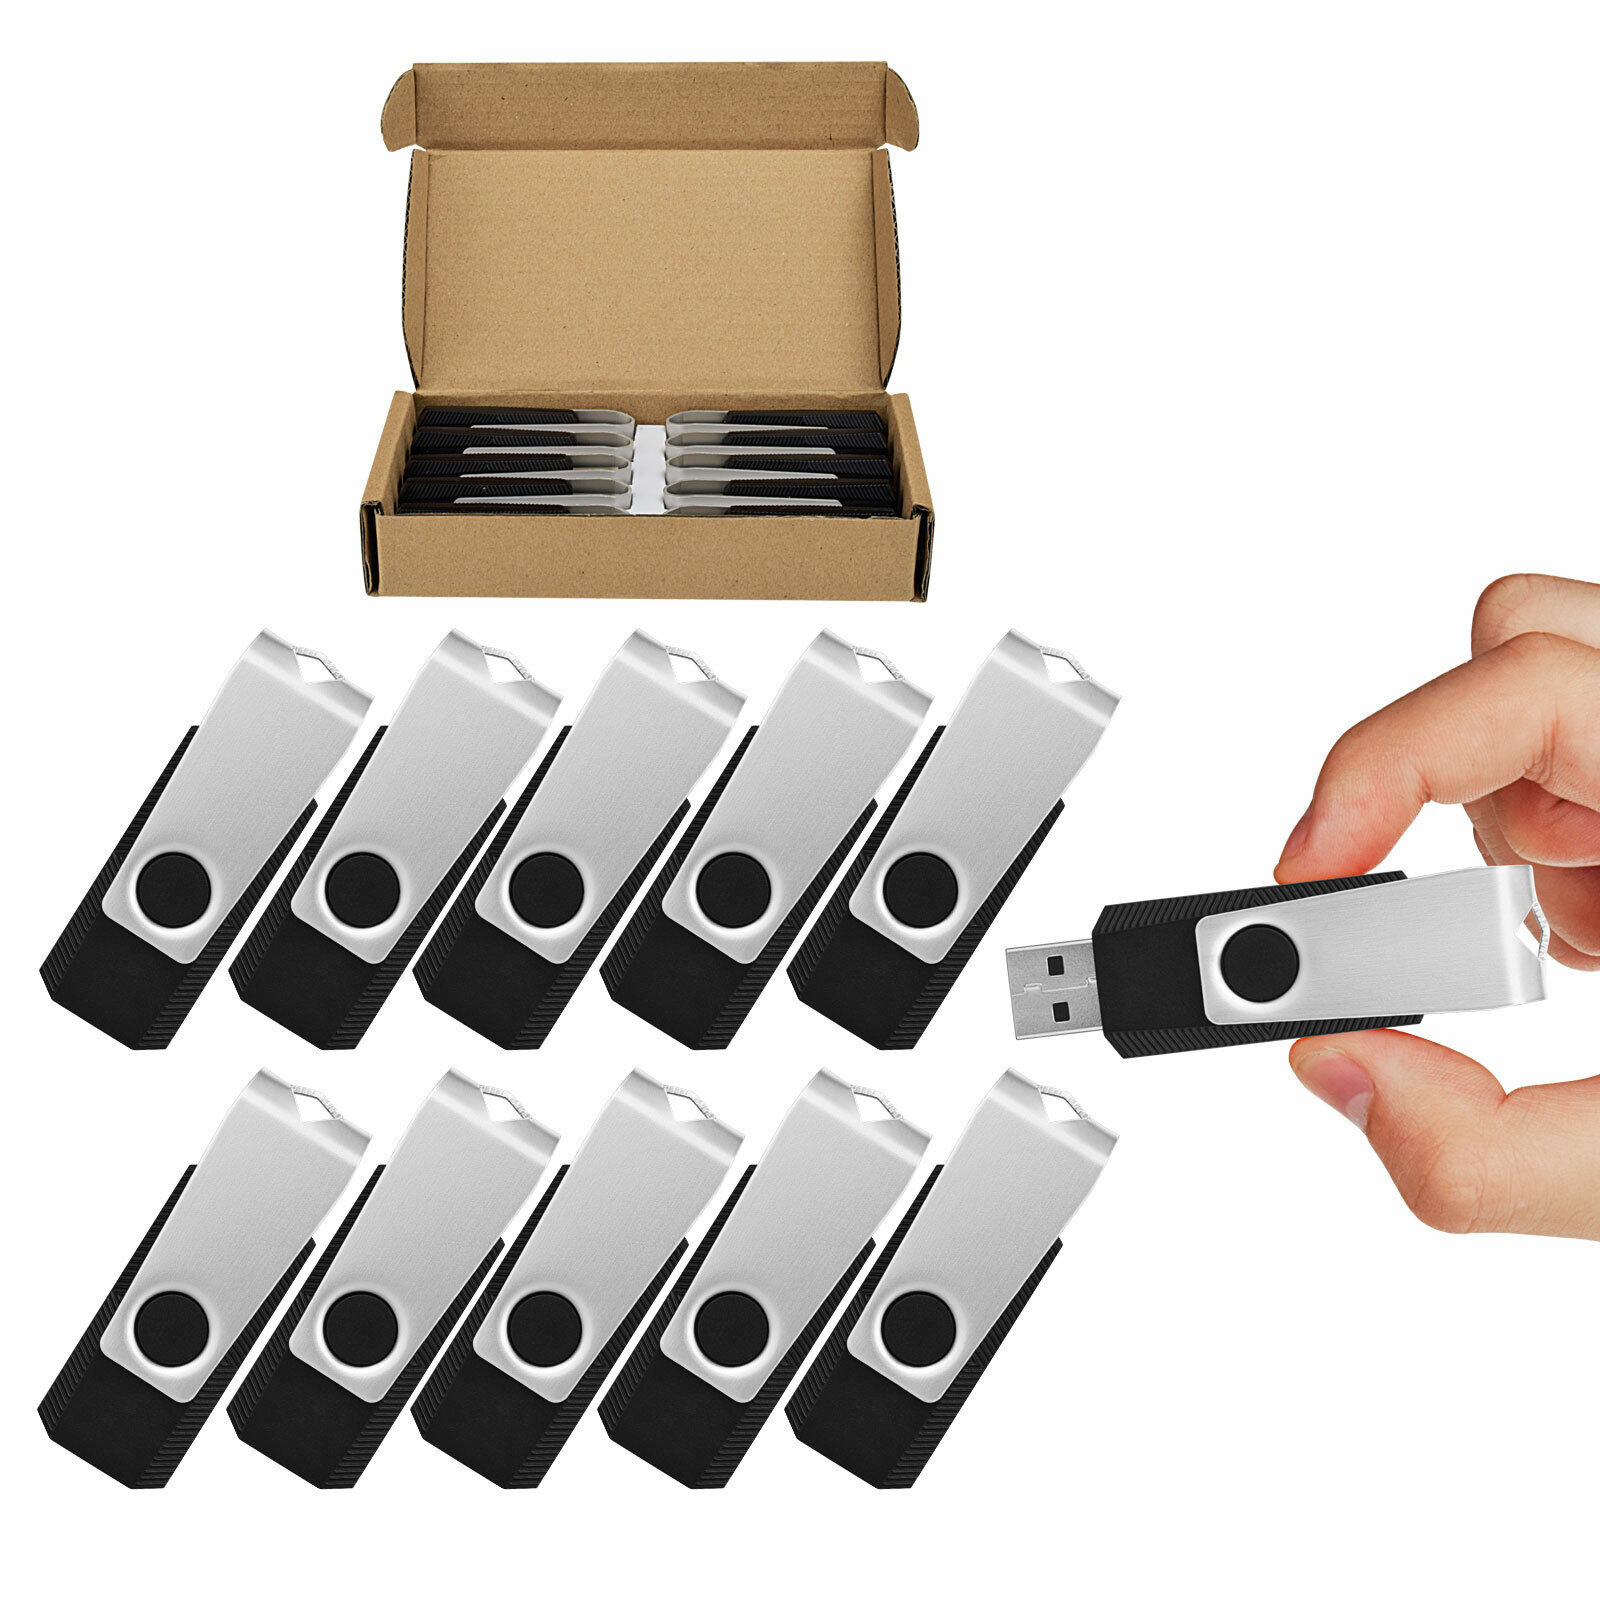 10 PACKS 32GB USB 2.0 Flash Drives Enough Storage Thumb Pen Drives Memory Stick